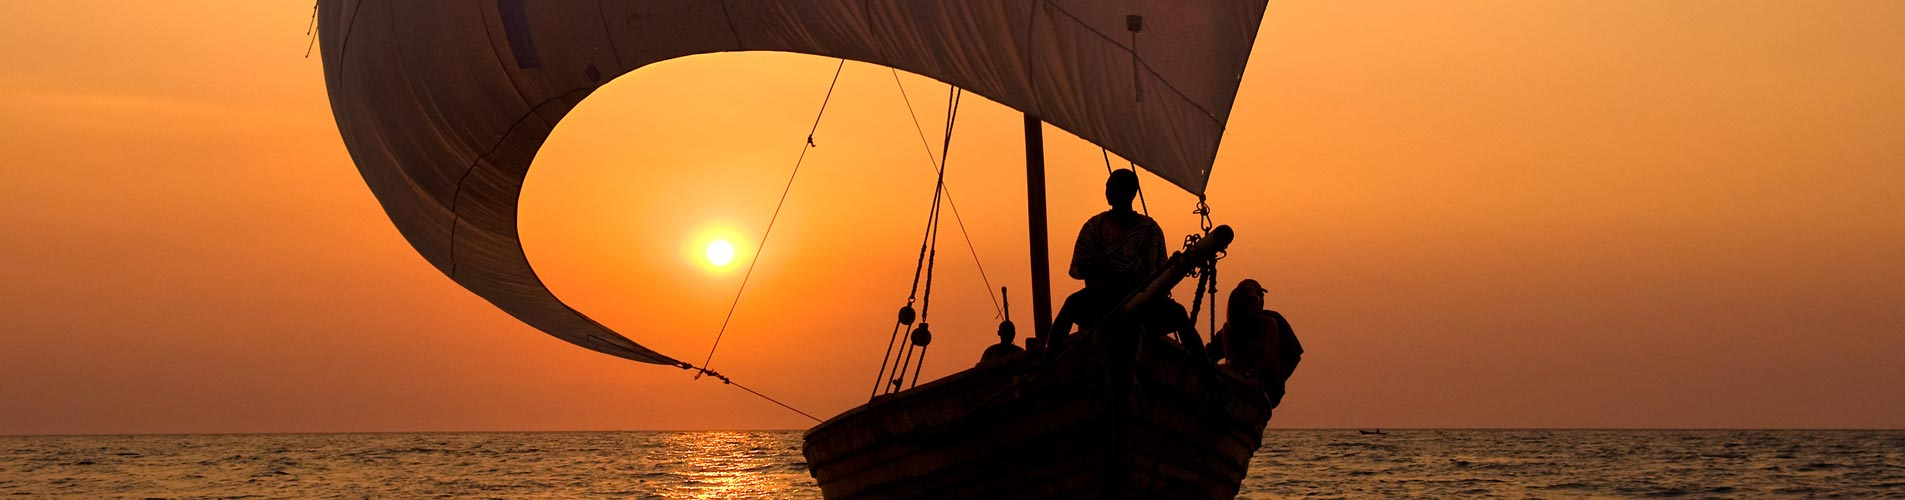 Malawi Safari Romantic Sunset Dhow Cruises